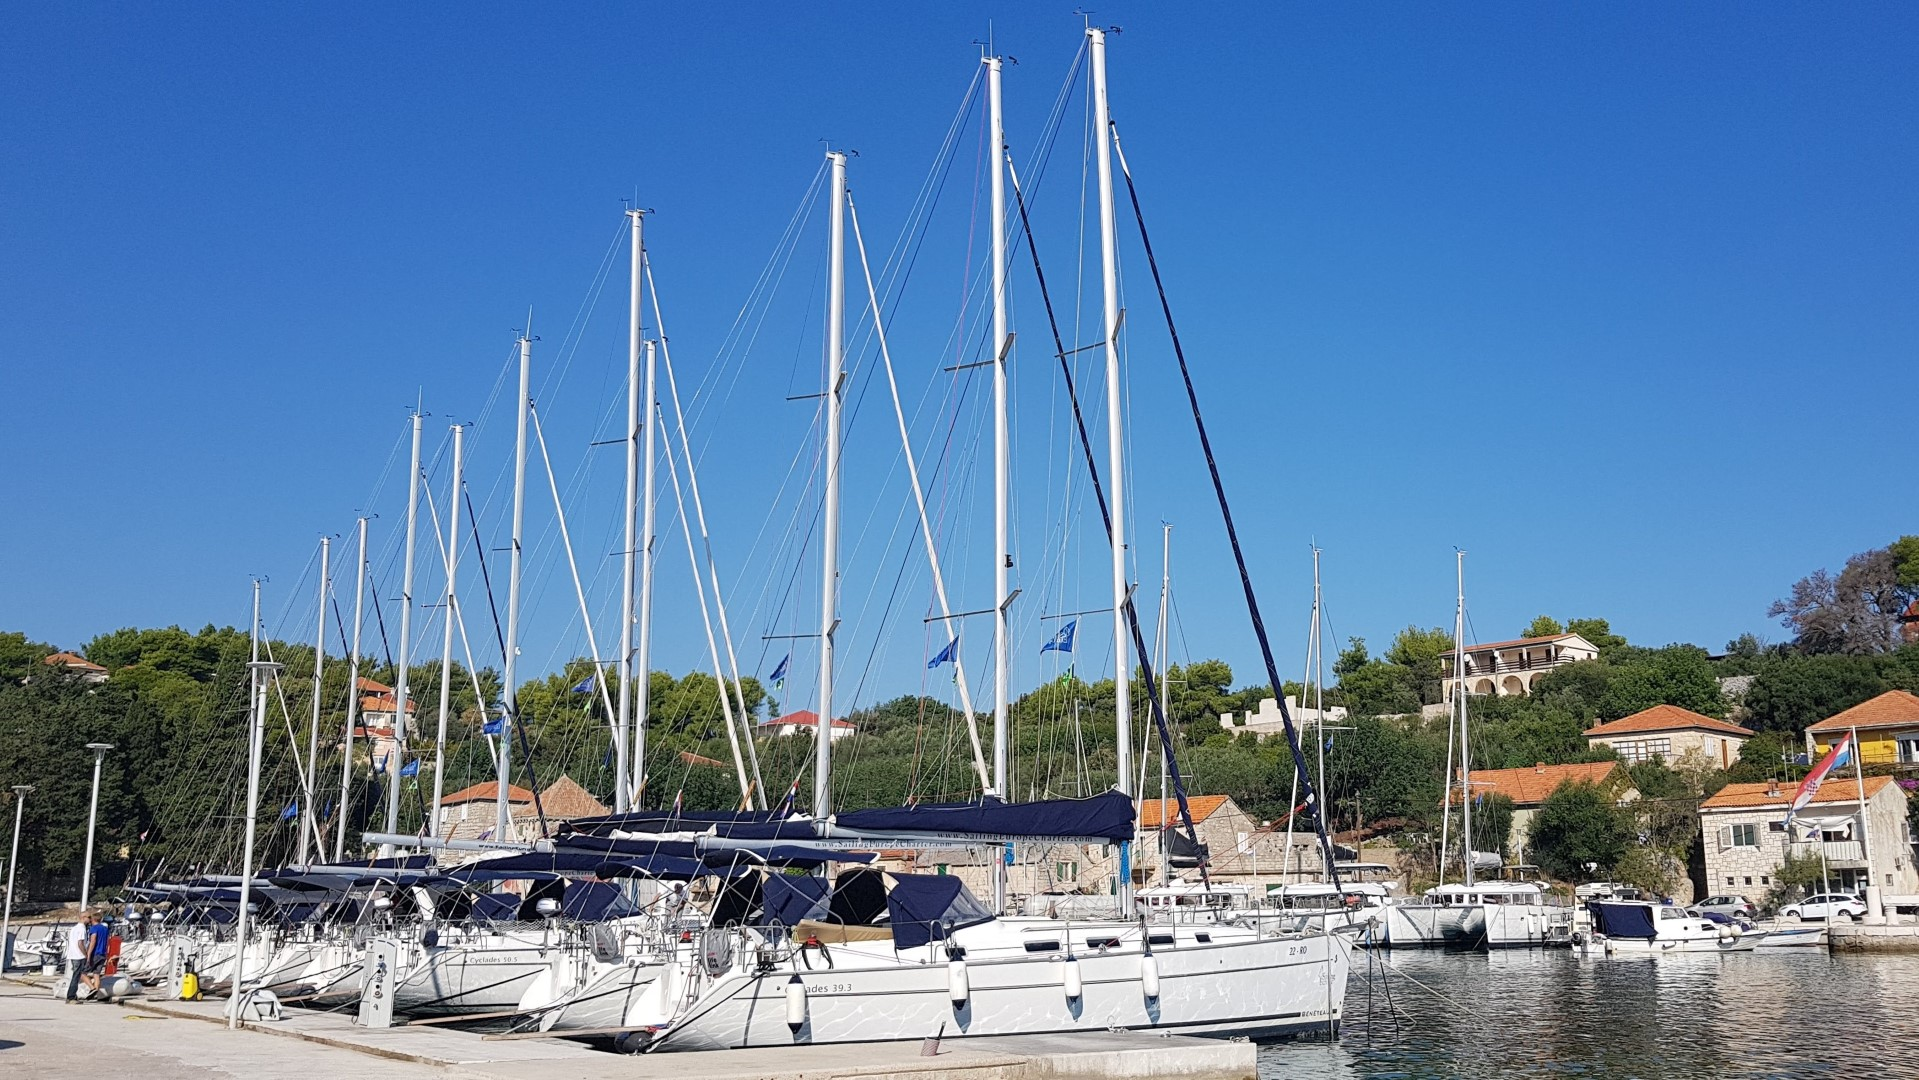 Lagoon 400 (GREENLAND) Marina Rogač - sailboats (photo taken 2019) - 6